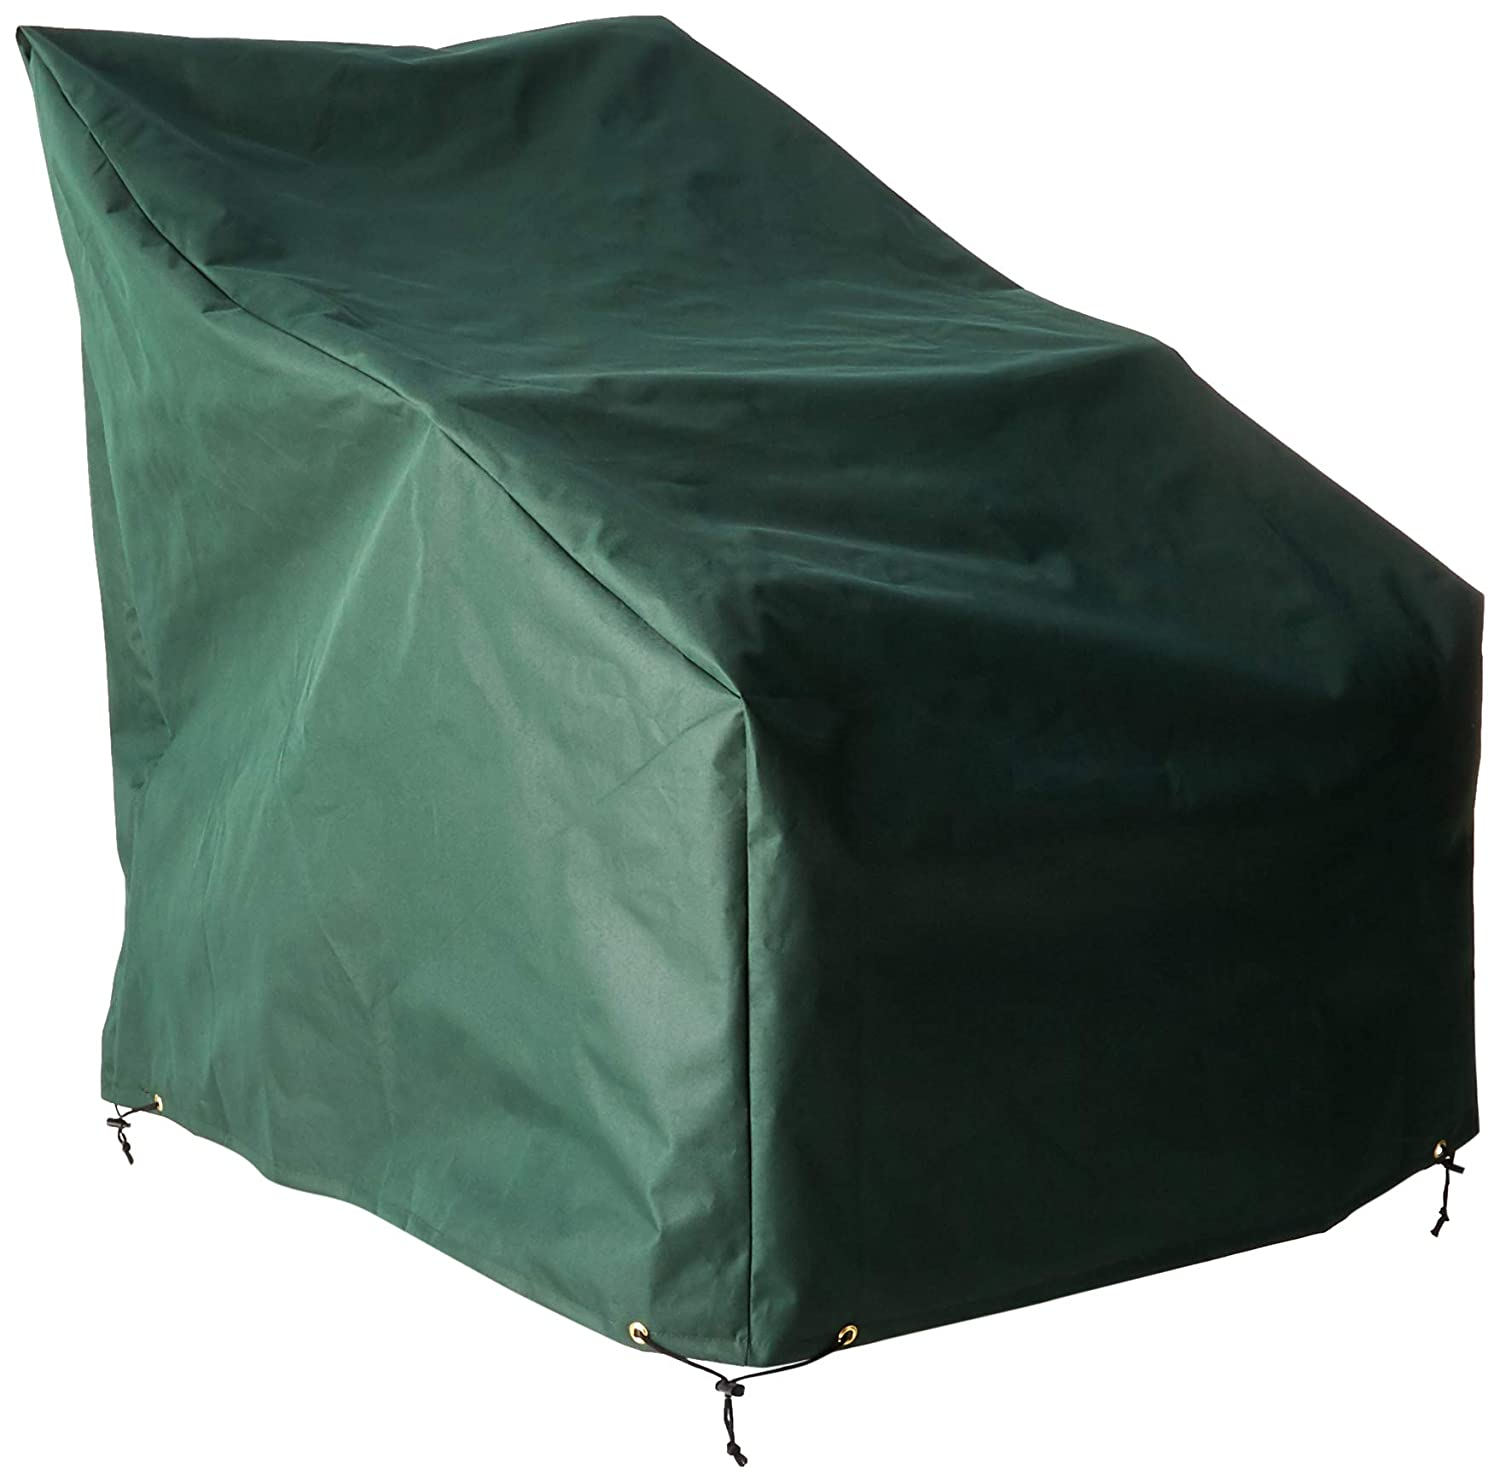 Bosmere Adirondack Cover 33 Wide x 41-1 2 Deep x 43 High at Back, Green